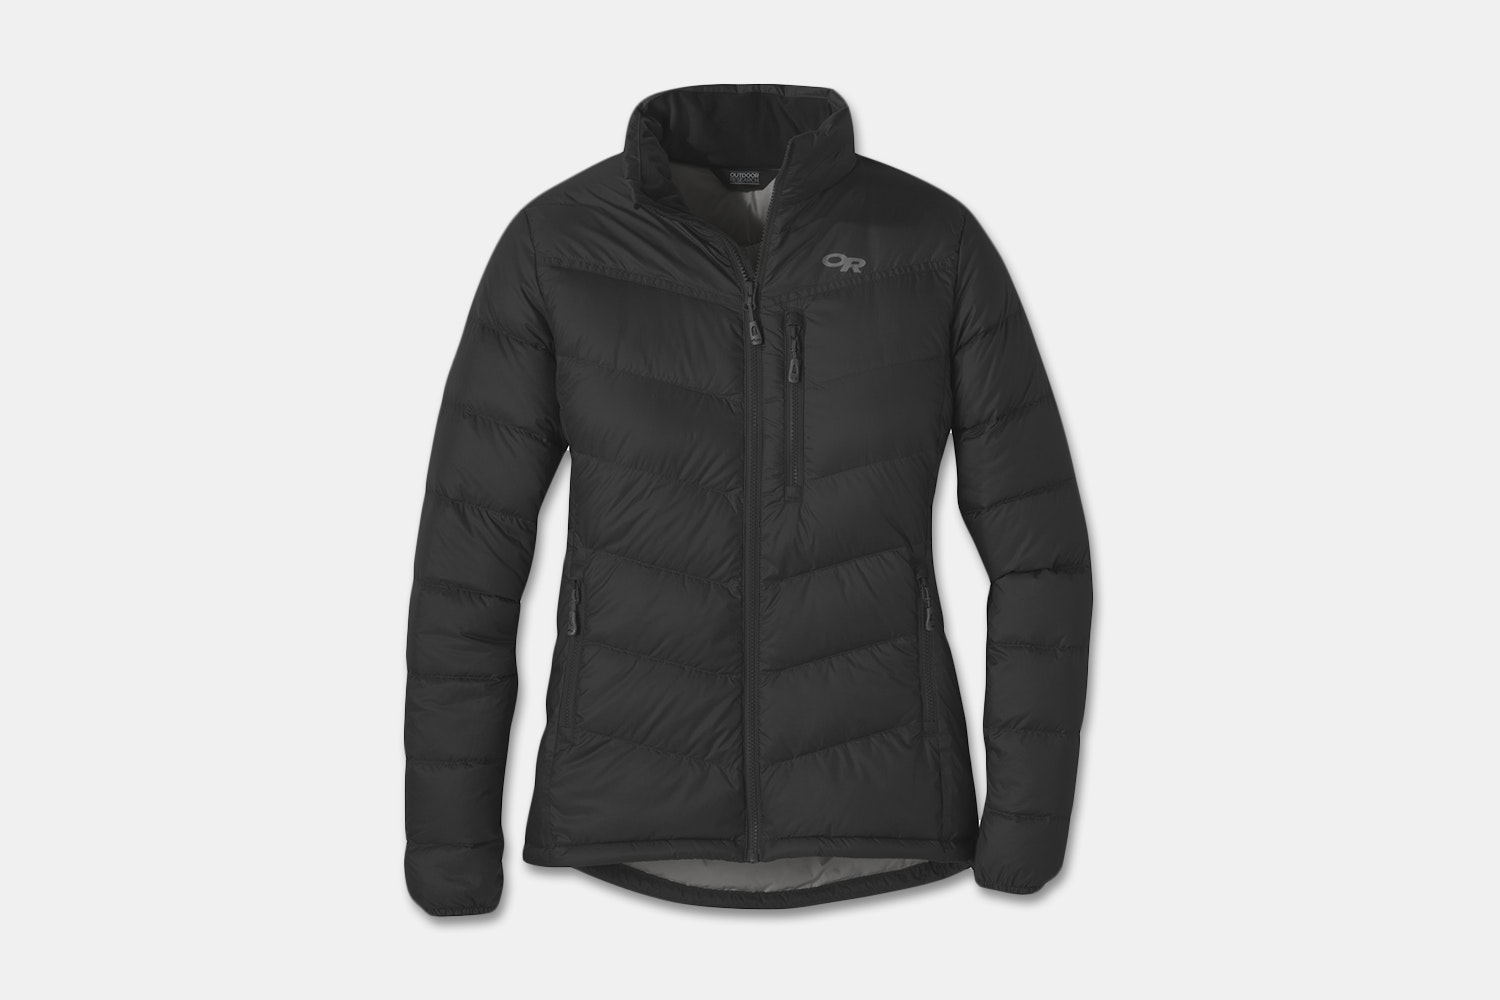 Women's – Jacket – Black